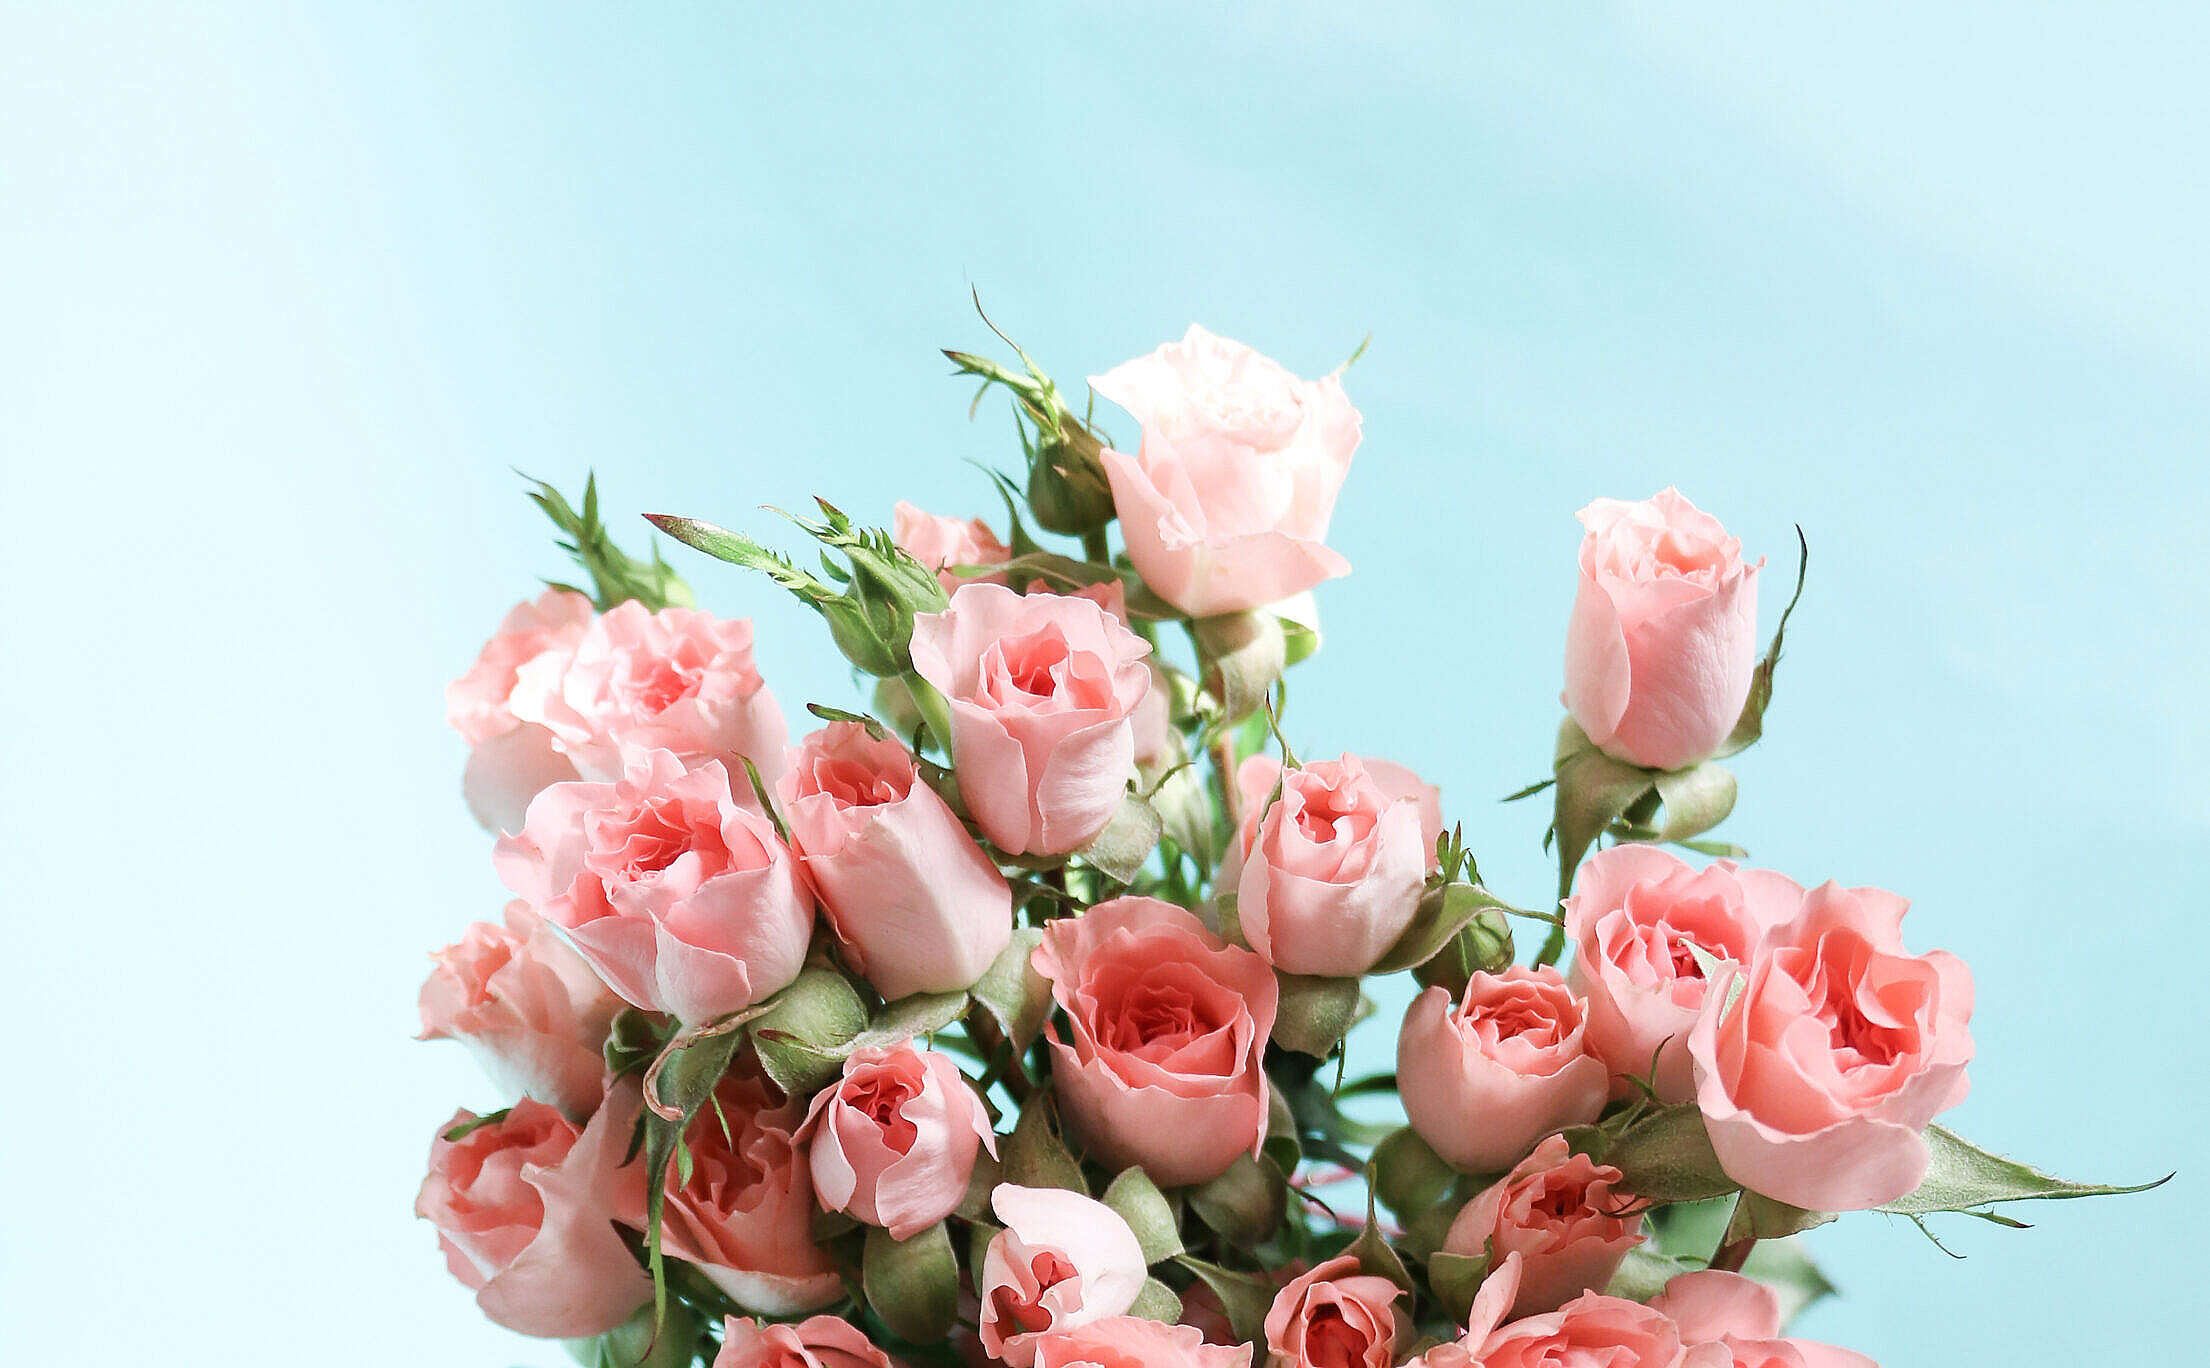 Pink Roses on Blue Background Free Stock Photo